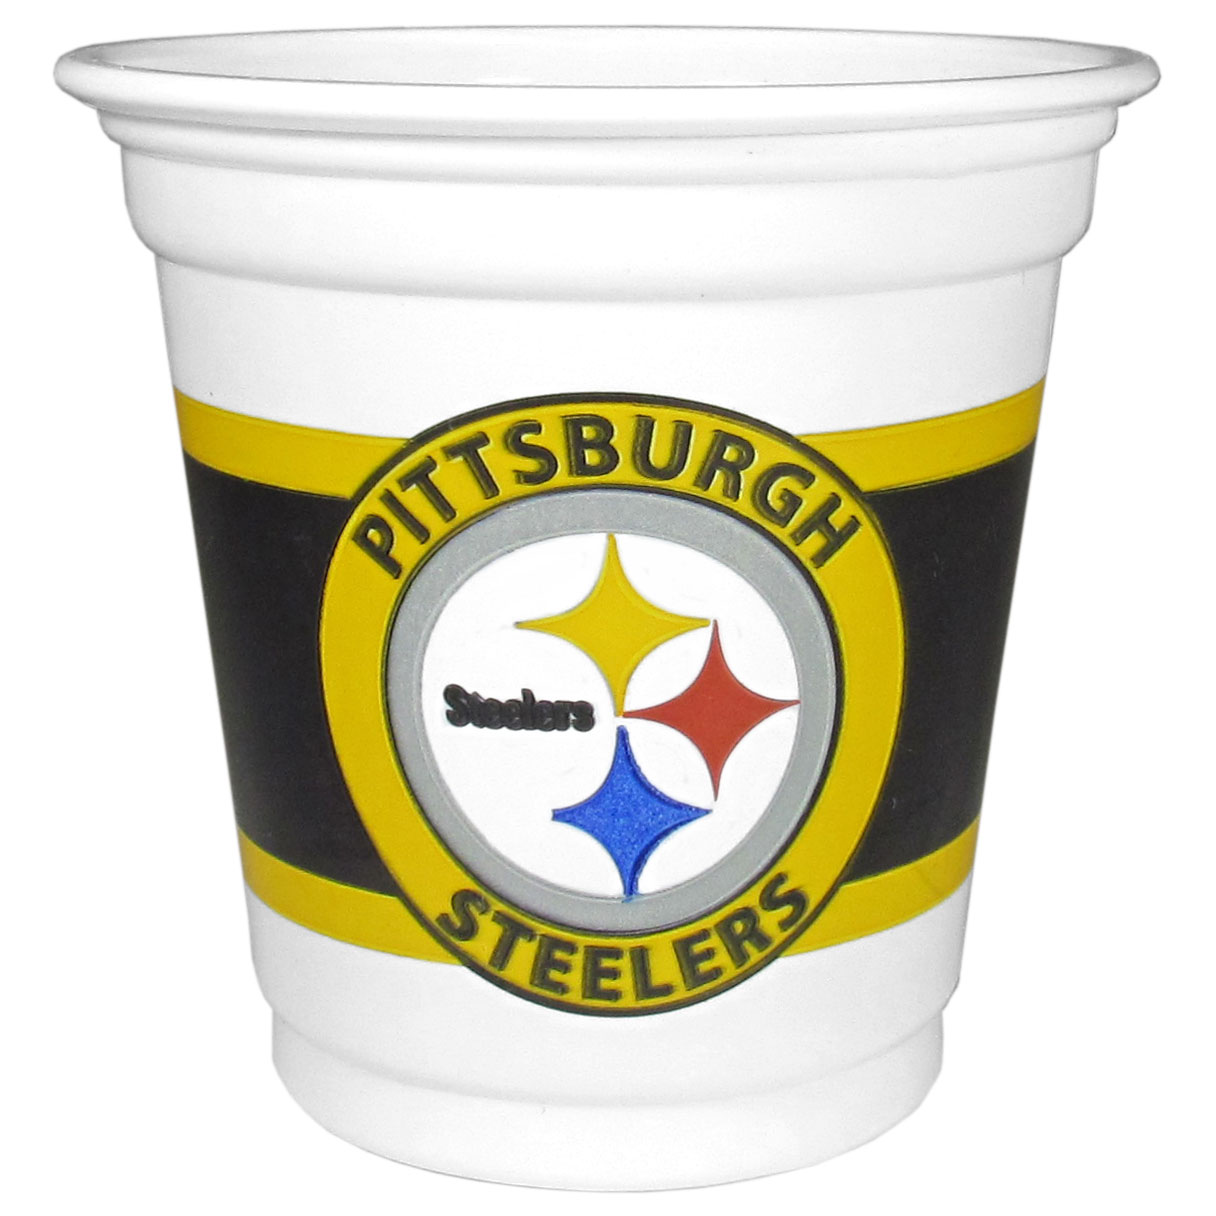 Pittsburgh Steelers 18 Game Day Mini Cups - No better way to show your off your team pride on game day than these Pittsburgh Steelers game day mini cups. The 3 ounce disposable glasses are the perfect addition to your game day party or tailgating BBQ. The cups come in a sleeve of 18 to make sure everyone is sporting true team spirit!